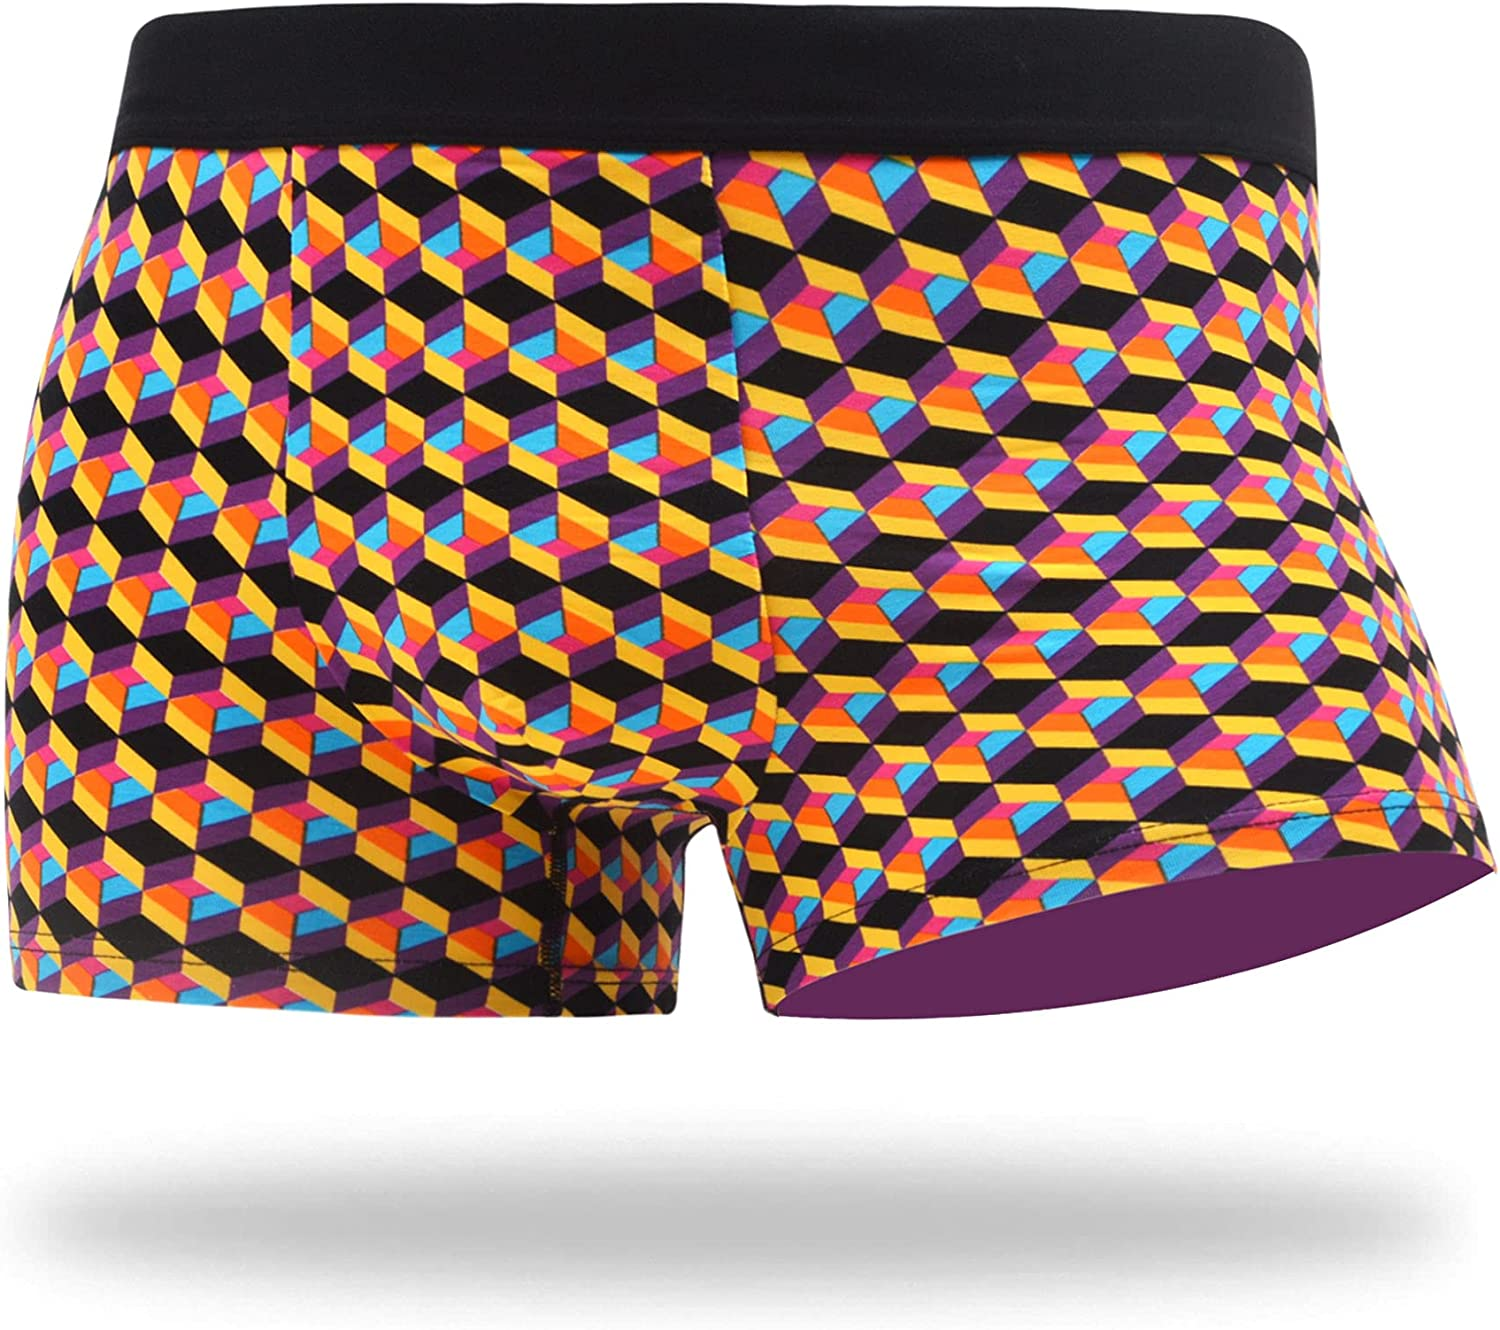 WAZATE Men's Raleigh Mall Funny Trunk Colorful Novelty Sales results No. 1 Comde Underwear Cotton